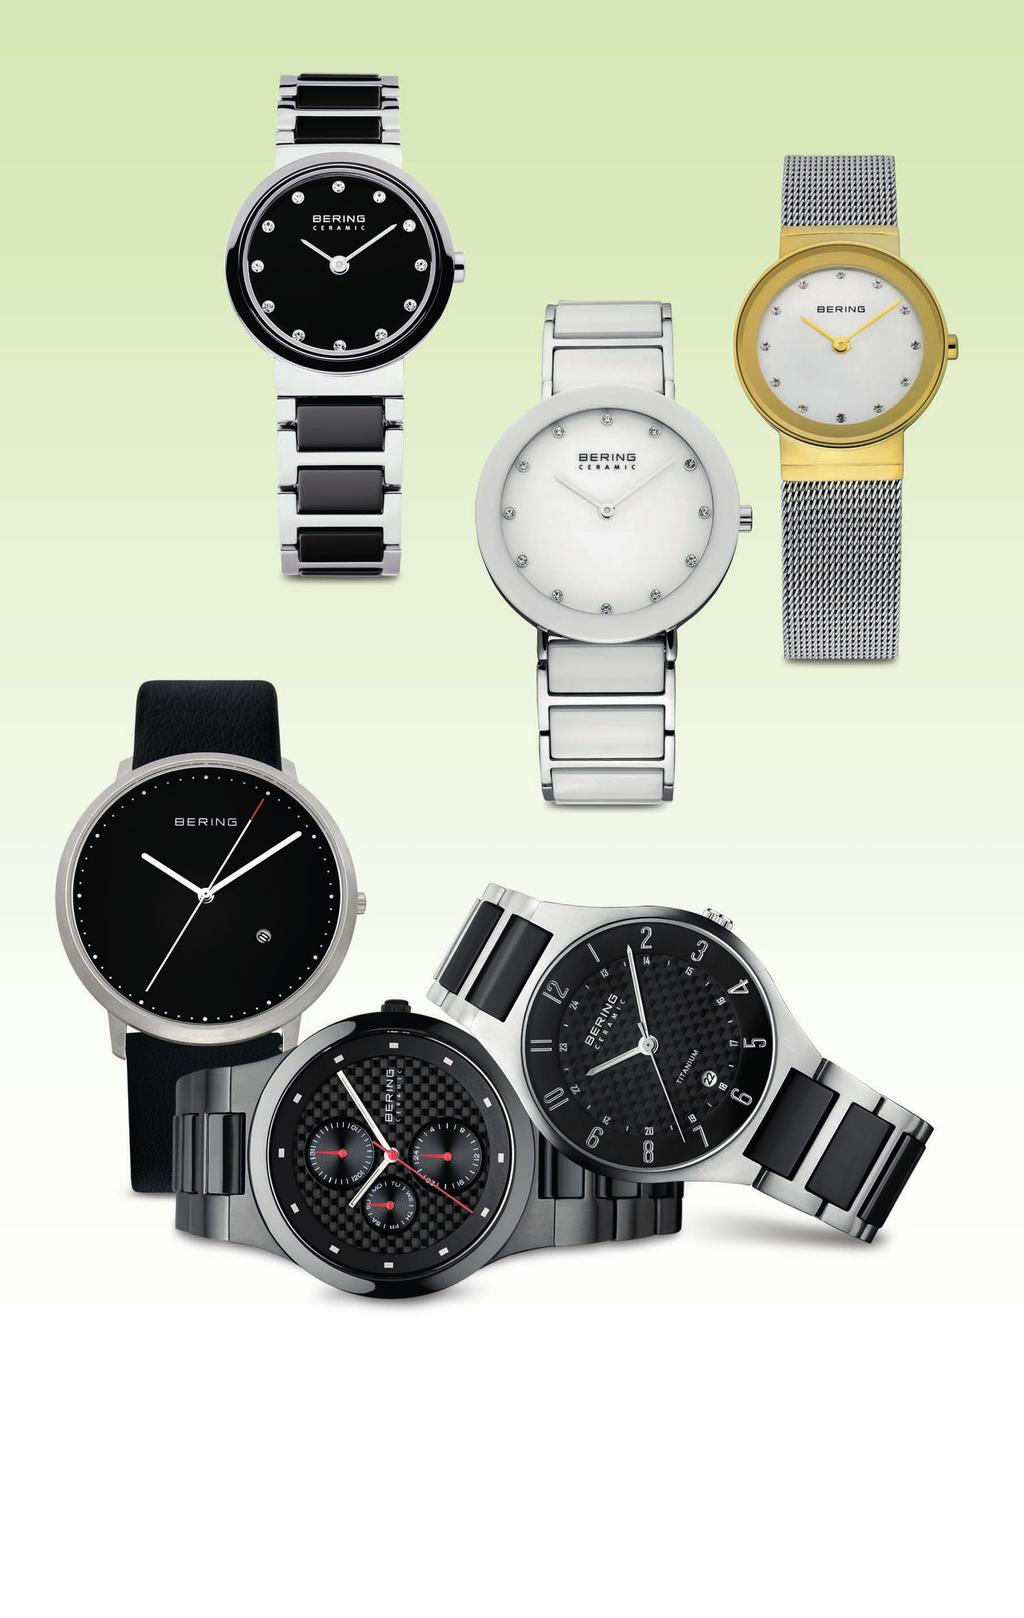 A A. Lady s stainless steel and black ceramic watch with black dial, $199. Lady s stainless steel and white ceramic watch, $199.